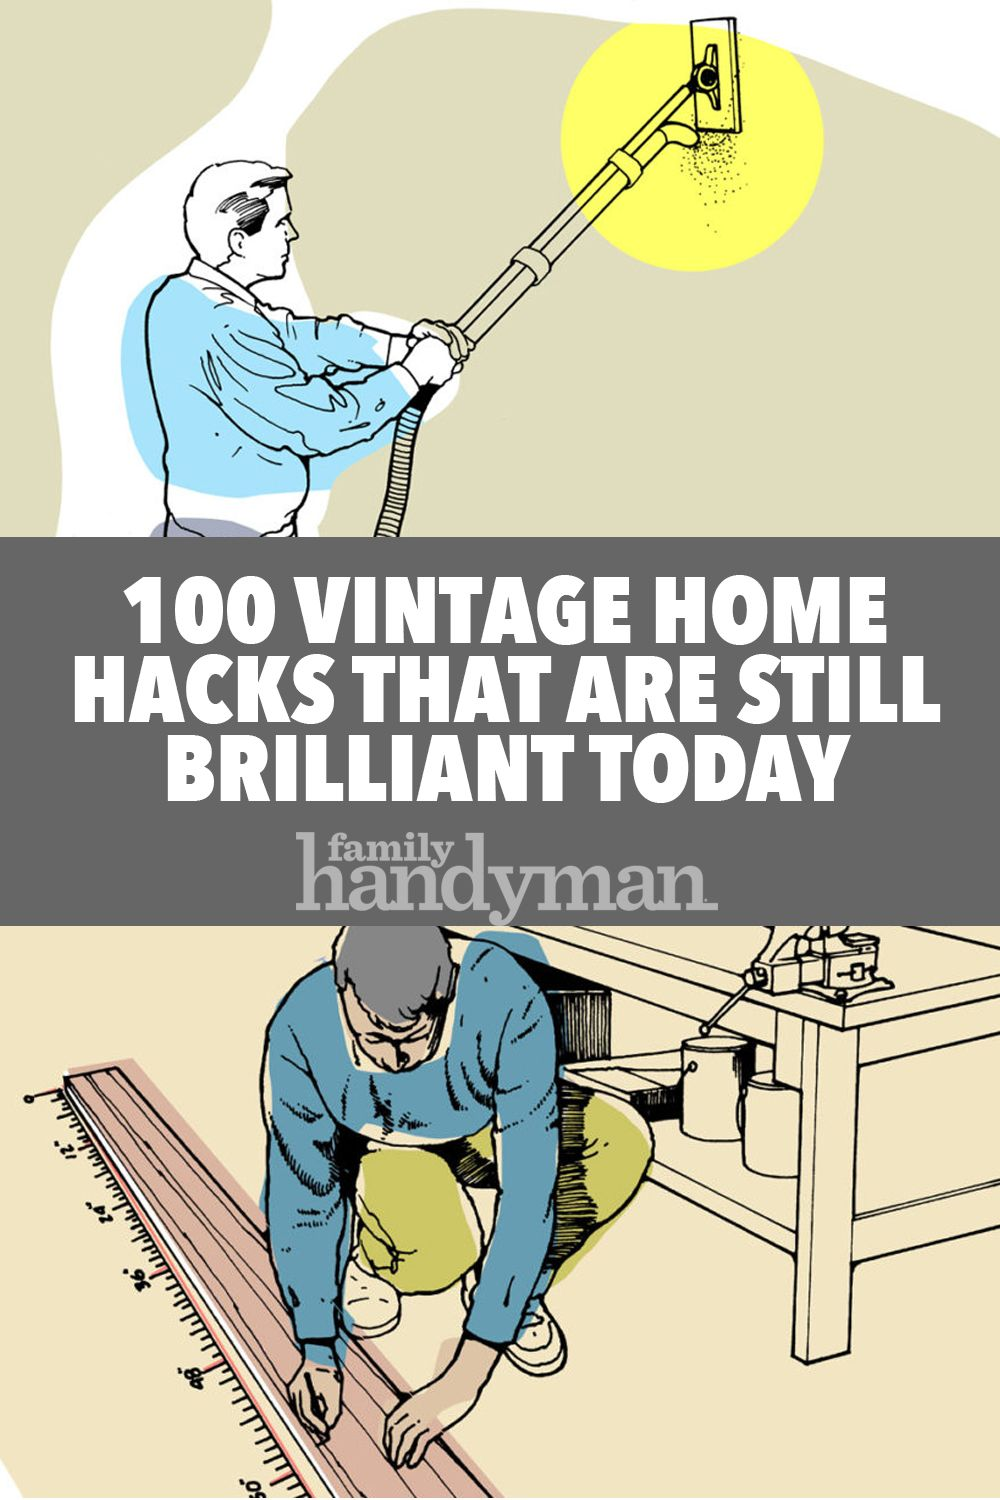 100 vintage home hacks that are still brilliant today | new